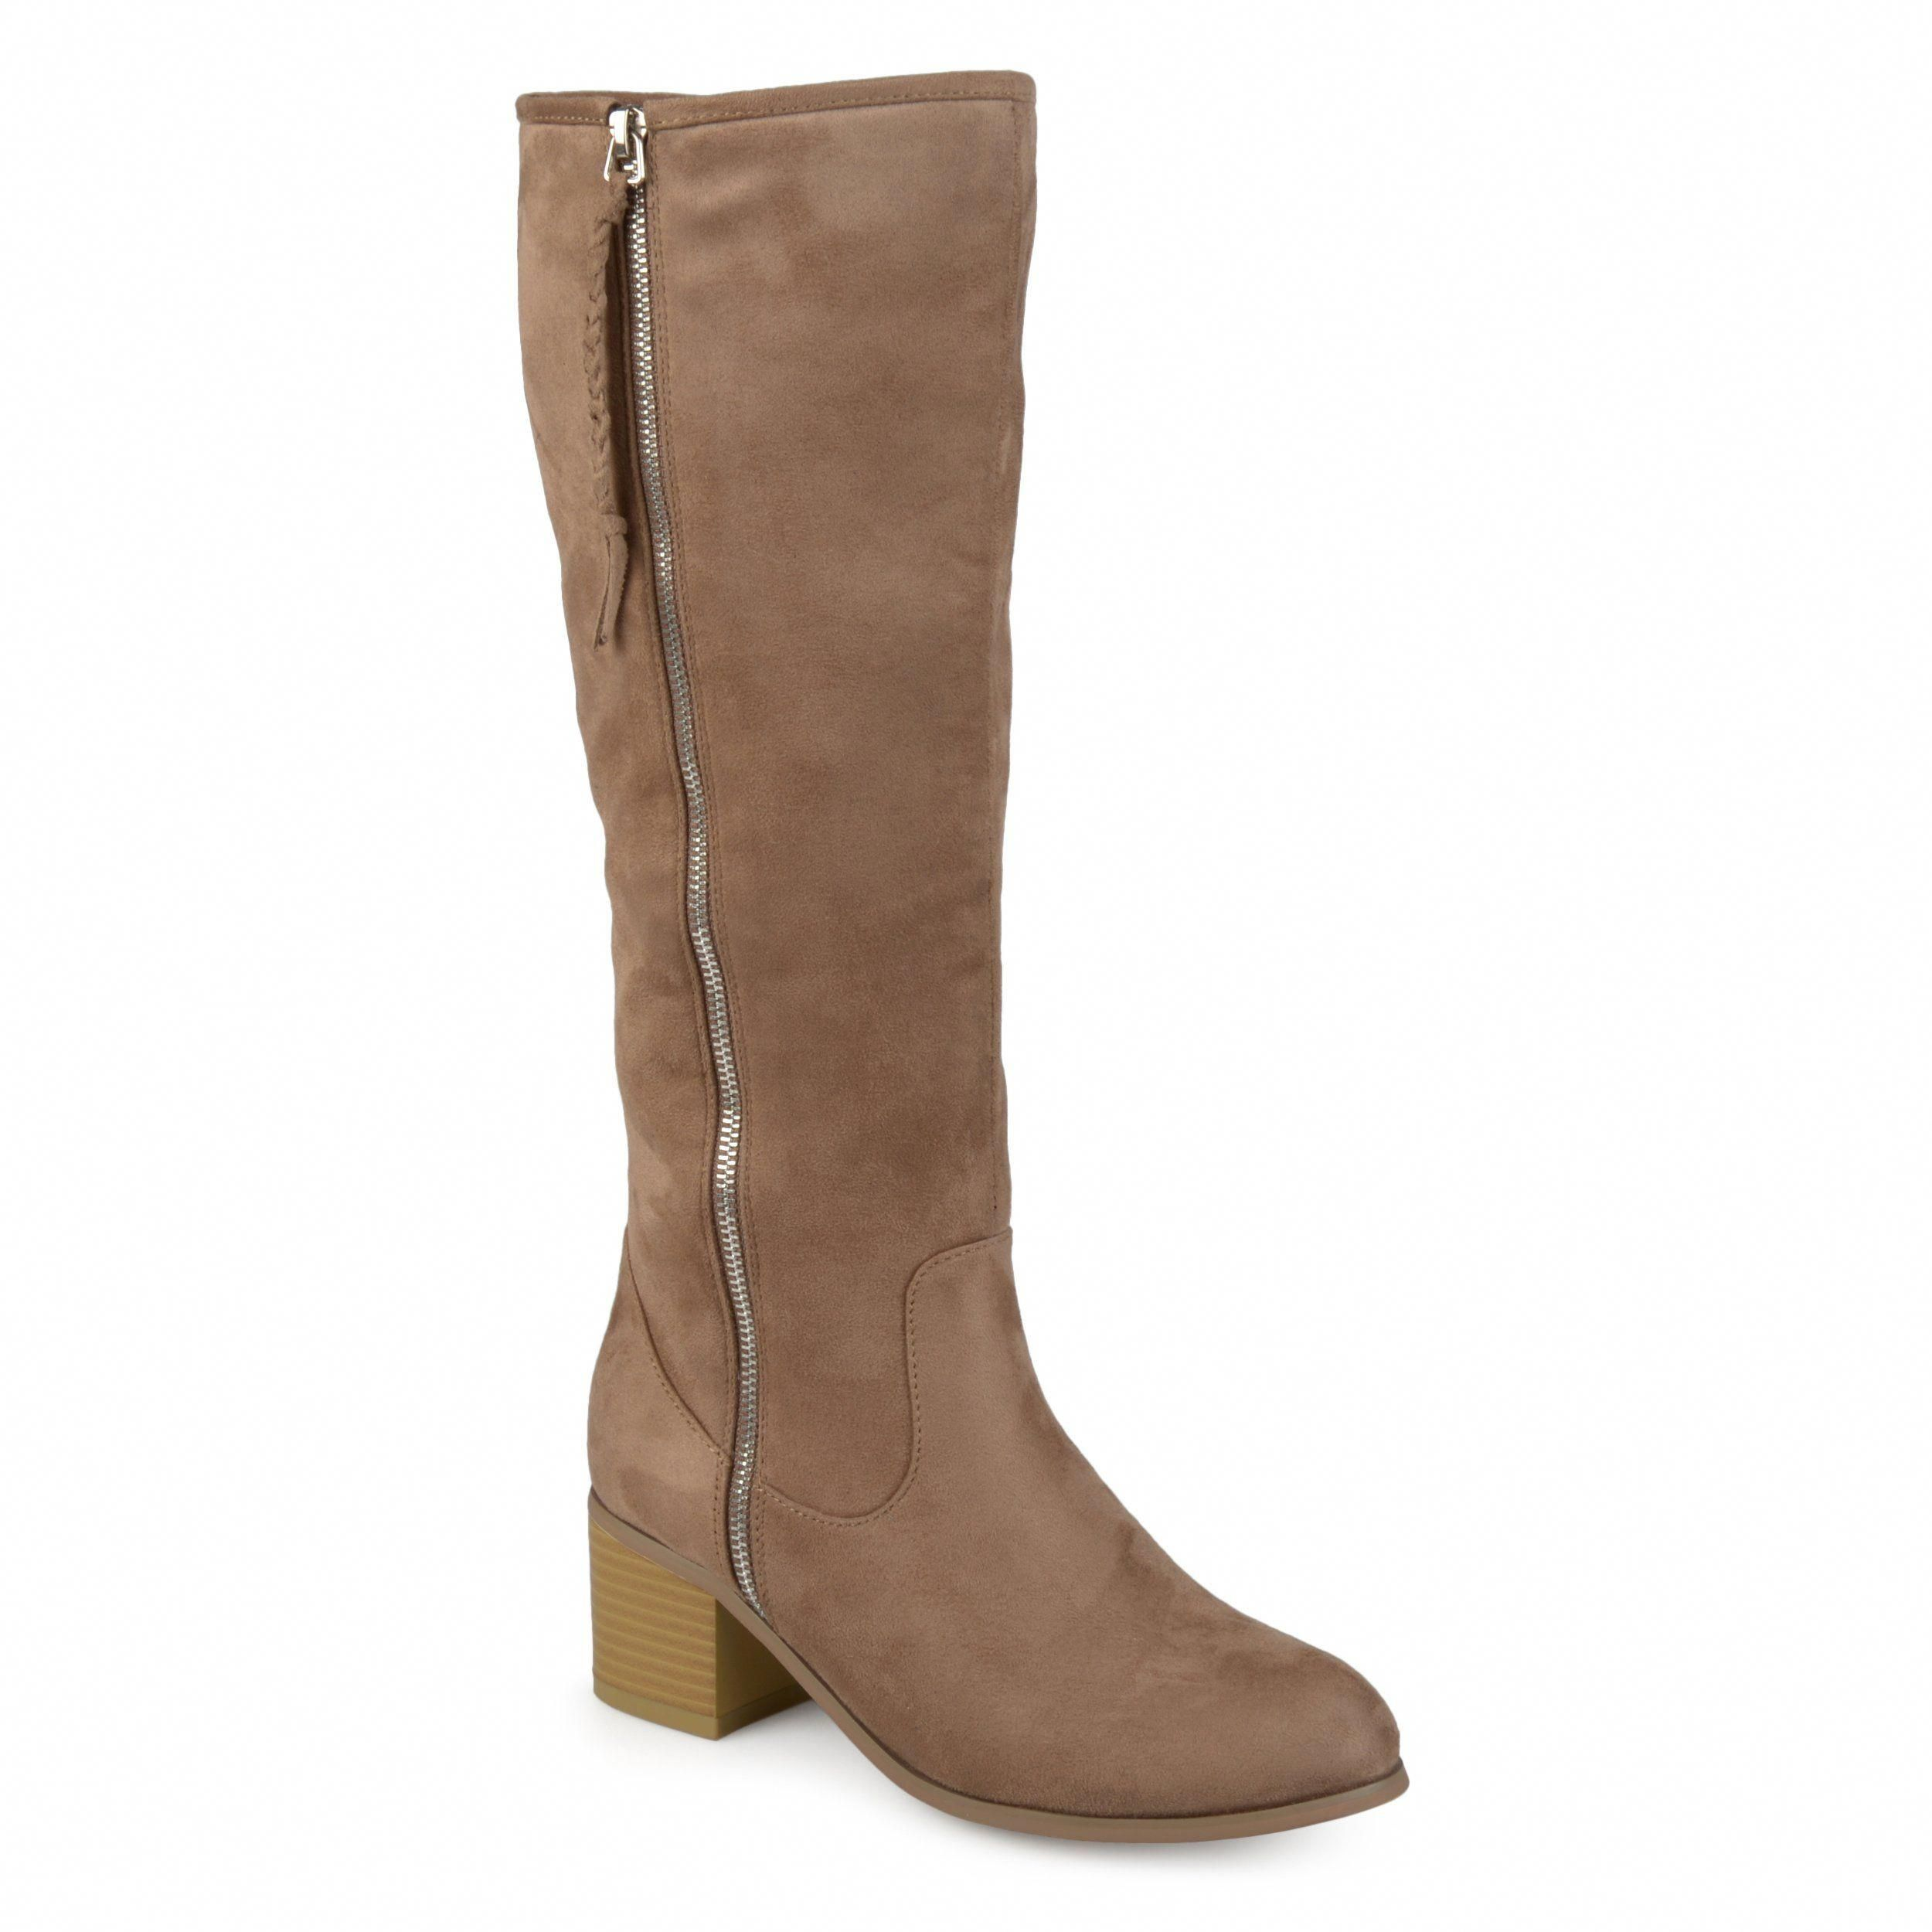 11e08ca21 Add classic style to your look in the mid-calf boot by Journee Collection. Sam  Edelman PENNY 2 Whisky Brown Leather Tall Riding Boots Womens Size ...